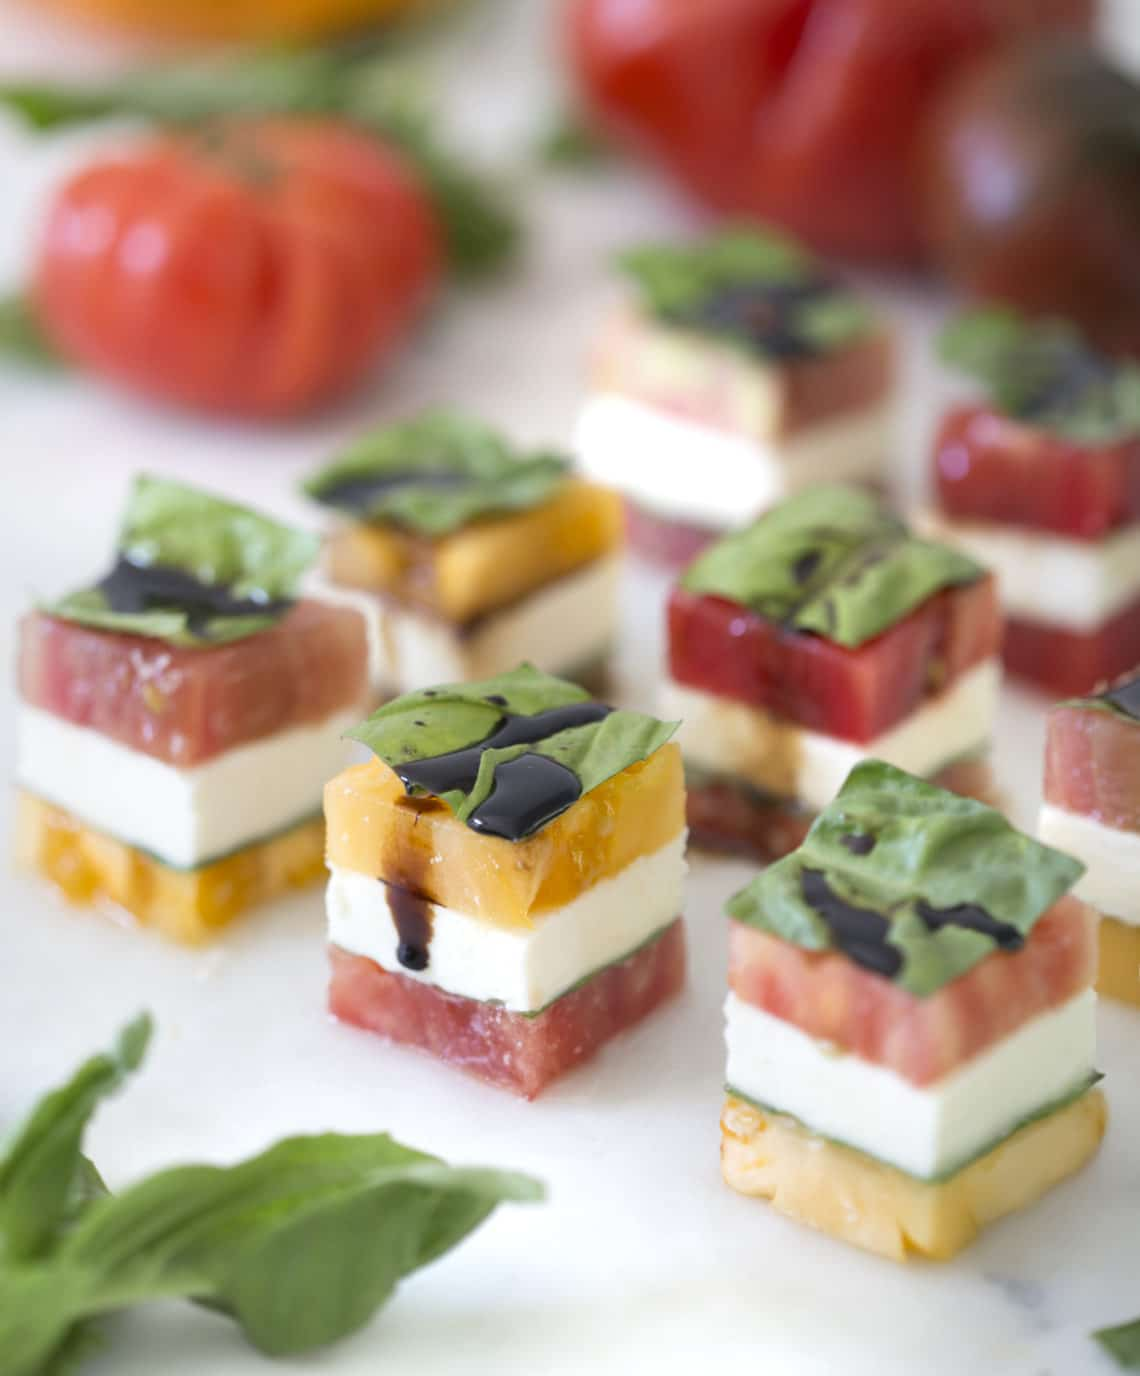 A fancy version of a caprese salad stacked and cut into cubes.